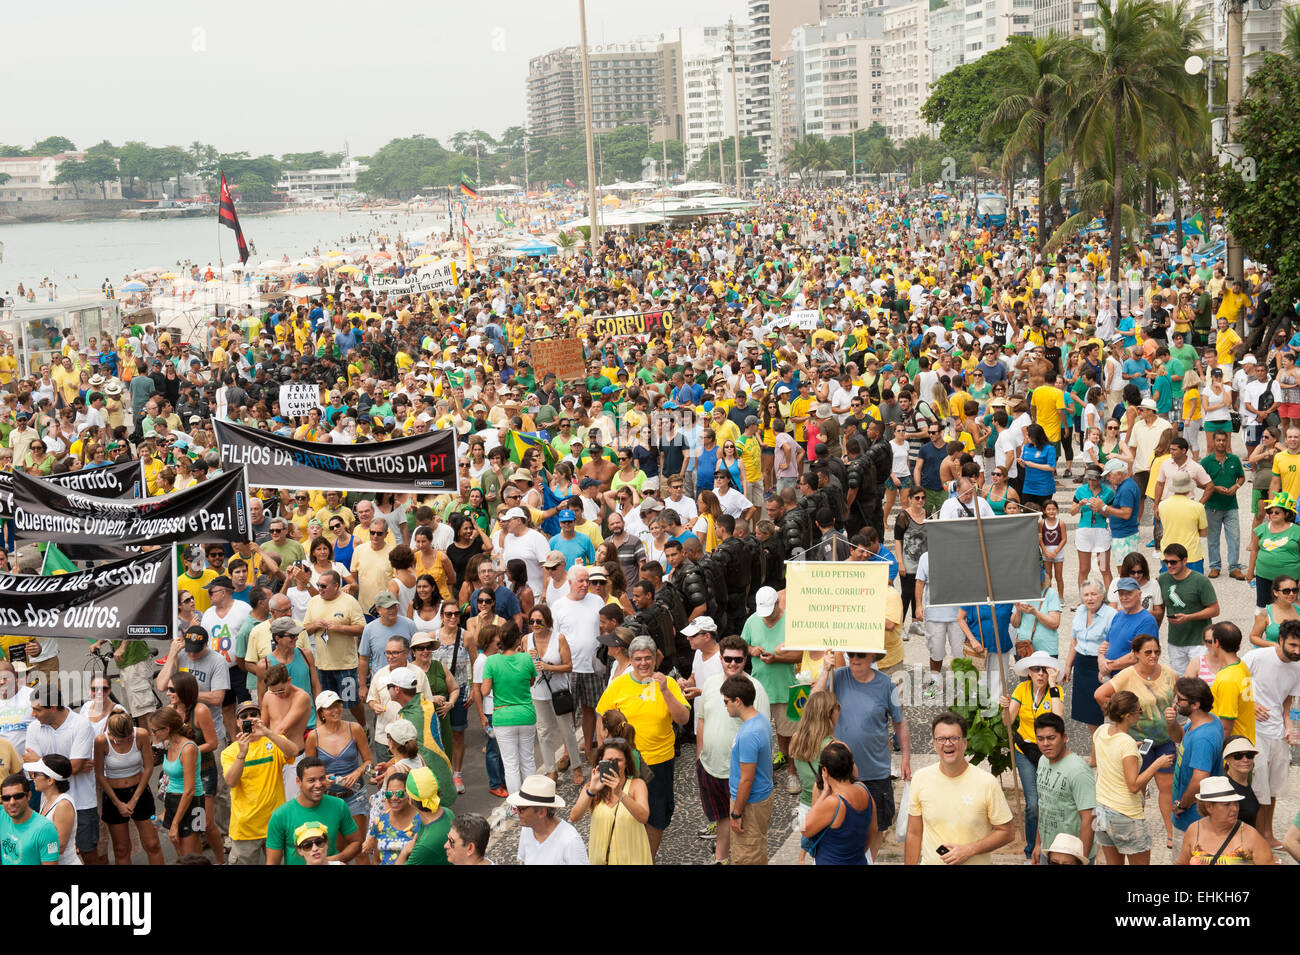 Protesters carry banners, Rio de Janeiro, Brazil, 15th March 2015. Demonstration against President Dilma Rousseff. - Stock Image